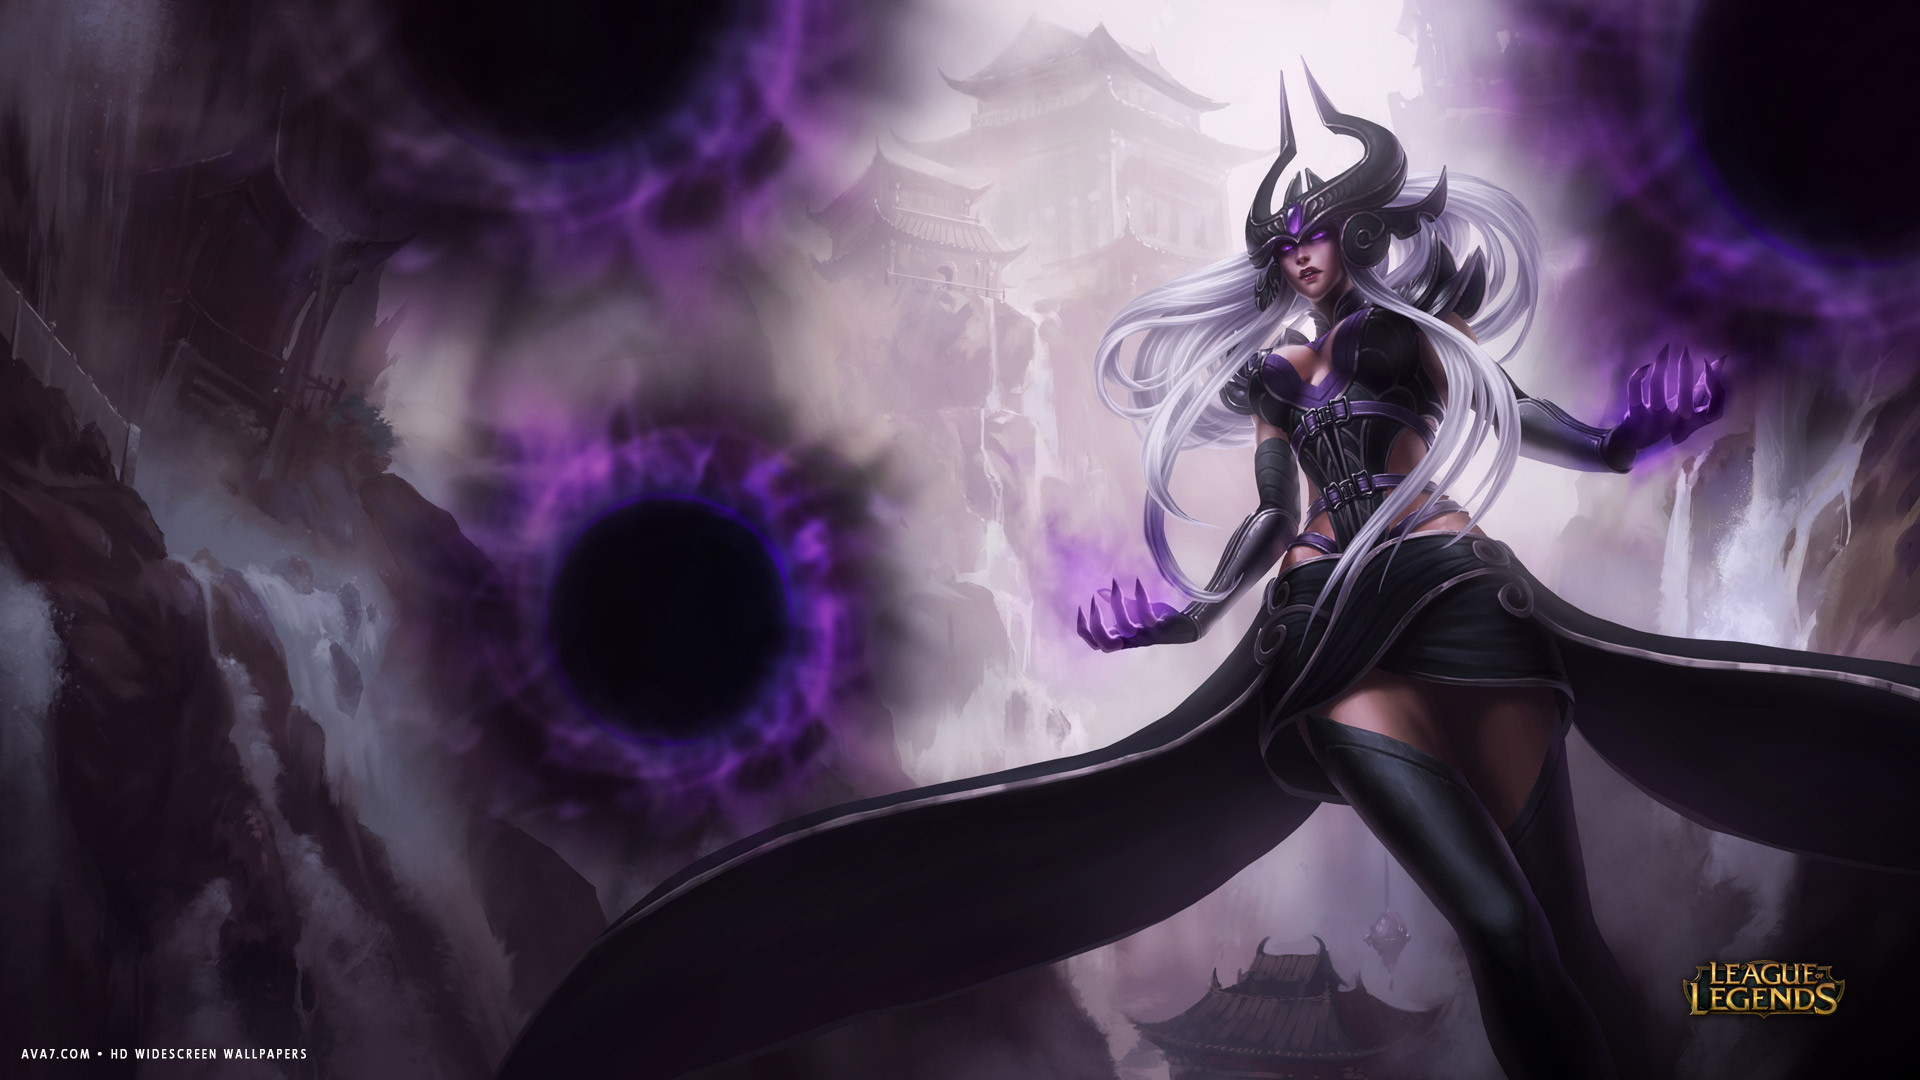 Soccer Girl Wallpaper League Of Legends Game Lol Syndra Evil Purple Magic Hd